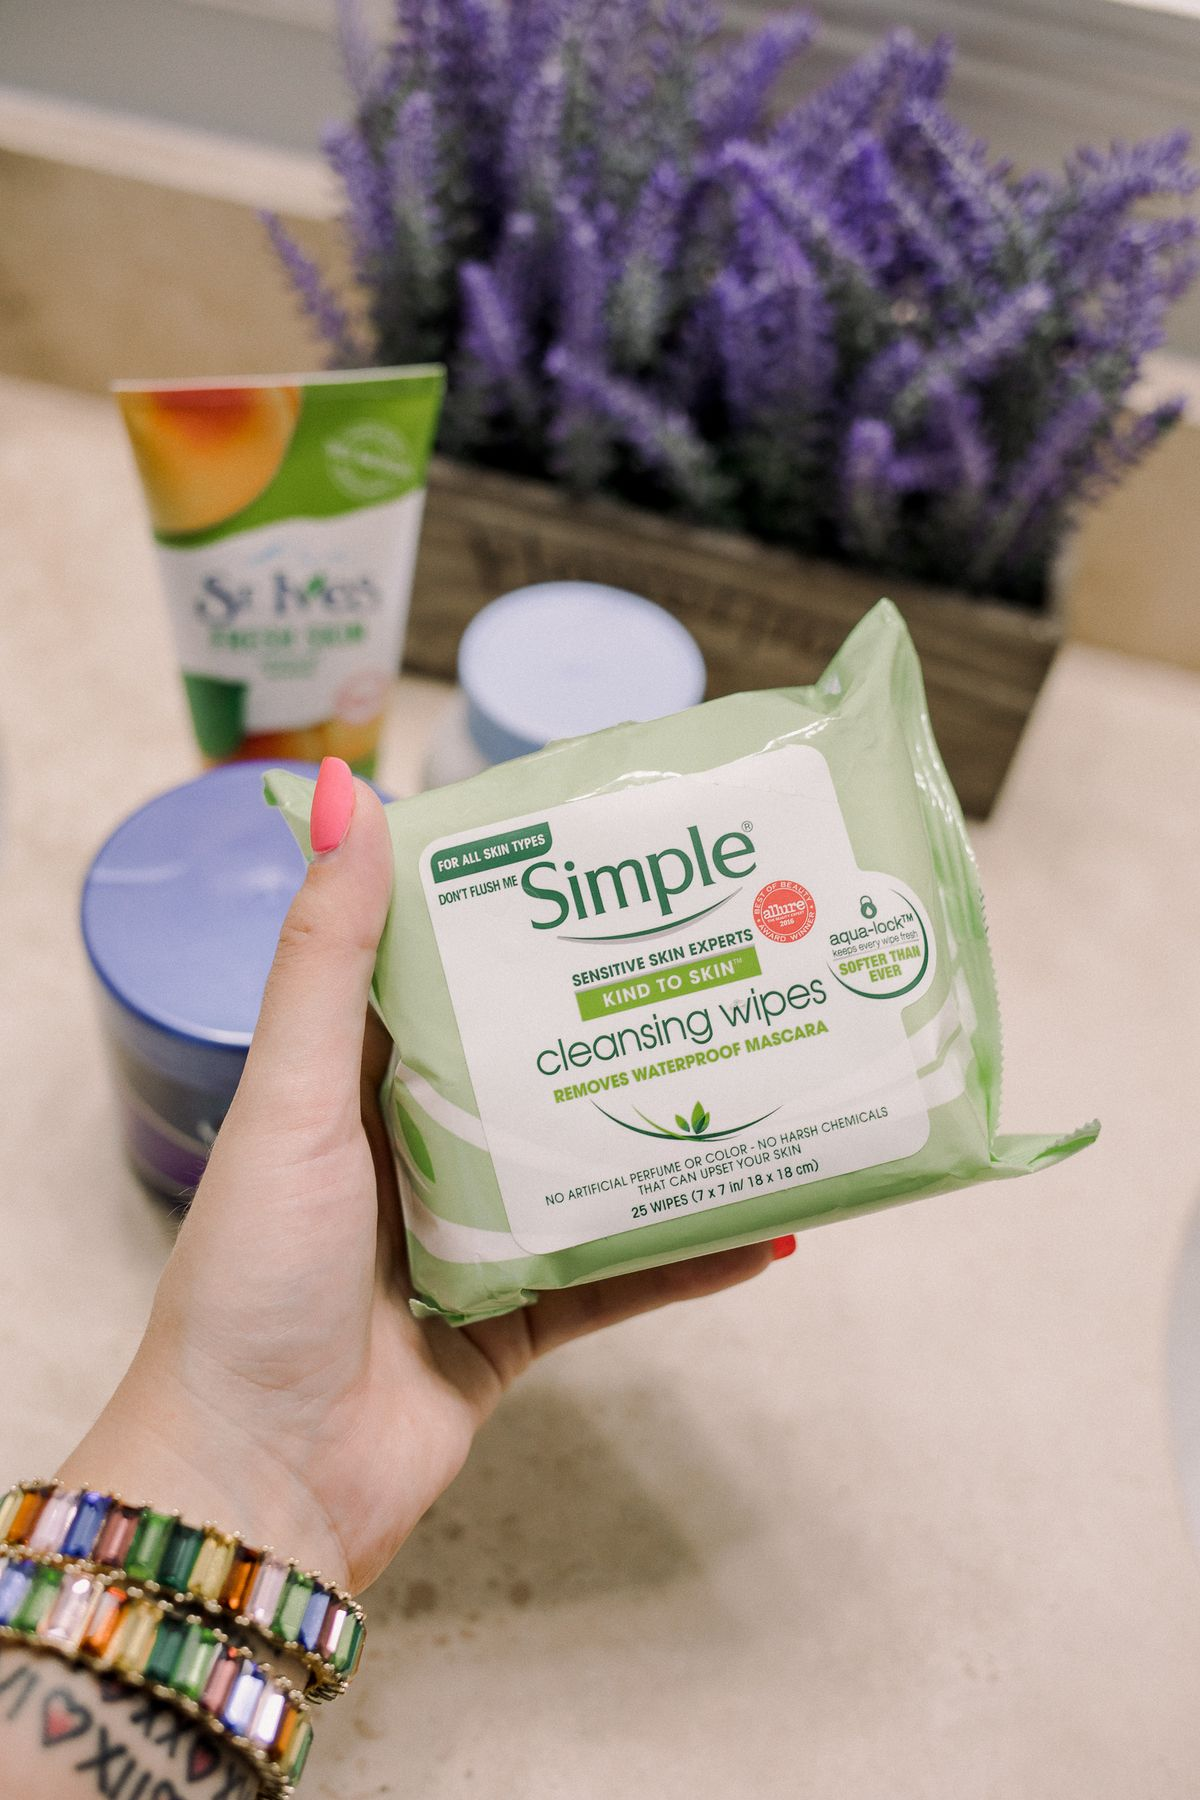 Houston beauty blogger Uptown with Elly Brown shares her review on the Simple cleansing wipes